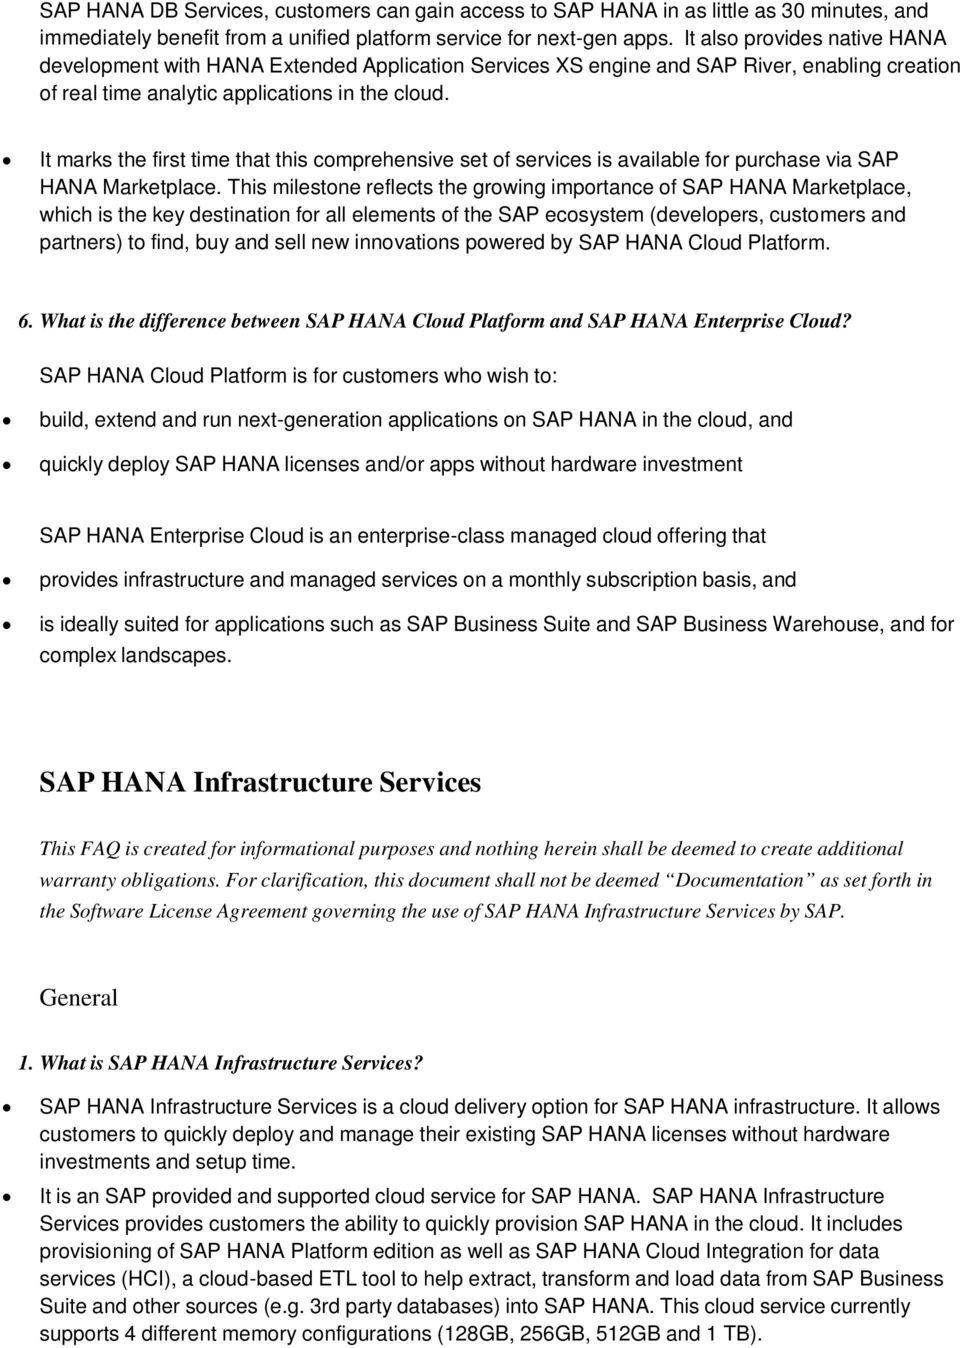 It marks the first time that this comprehensive set of services is available for purchase via SAP HANA Marketplace.